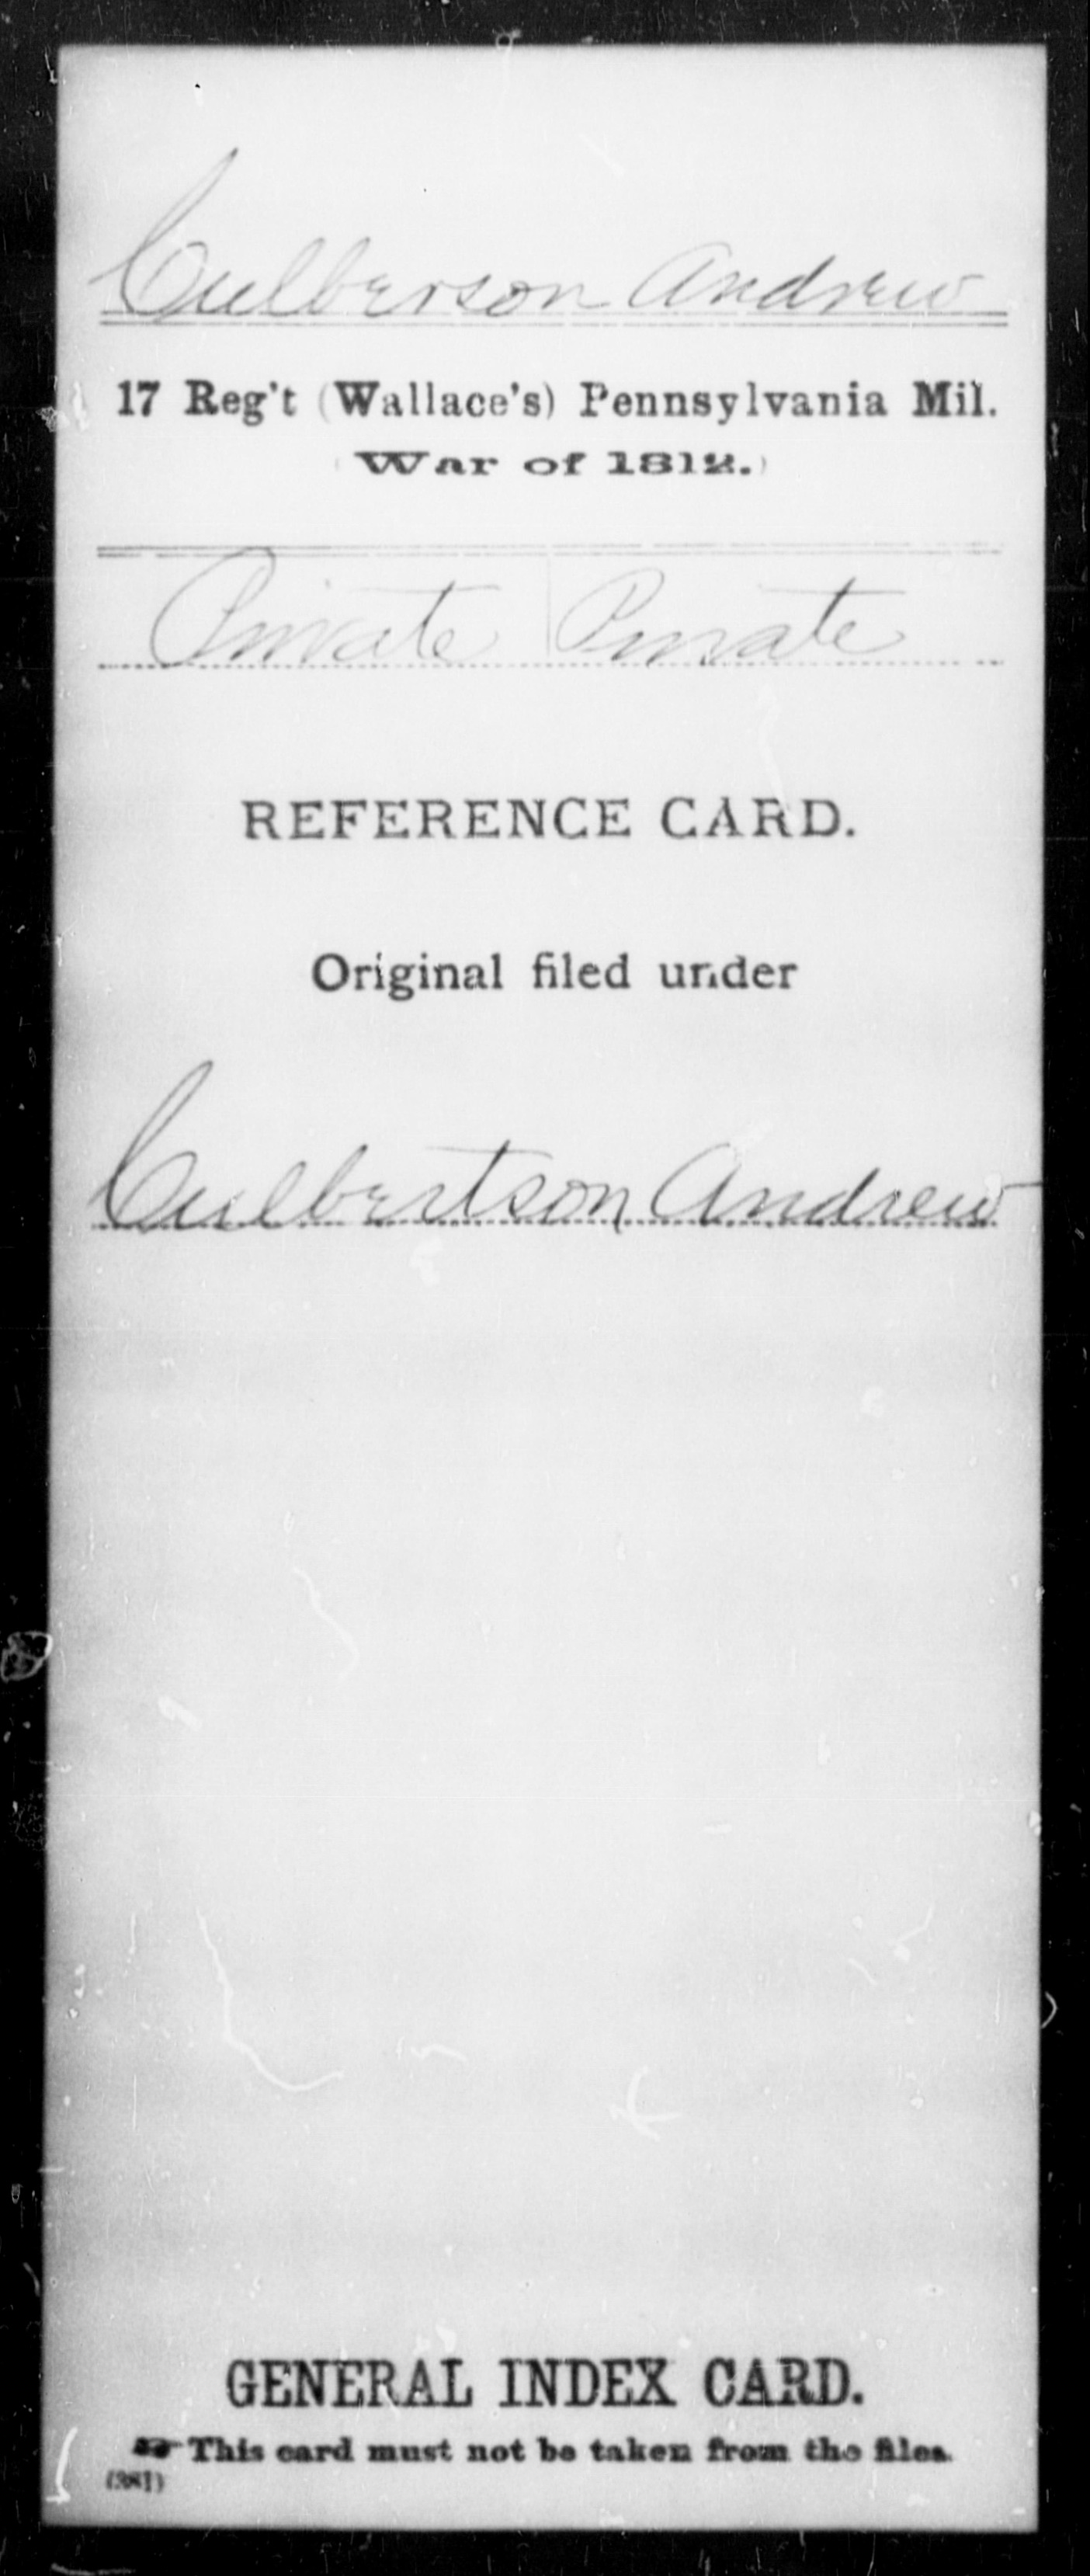 Culberson, Andrew - State: Pennsylvania - Regiment: 17 (Wallace's) Pennsylvania Mil